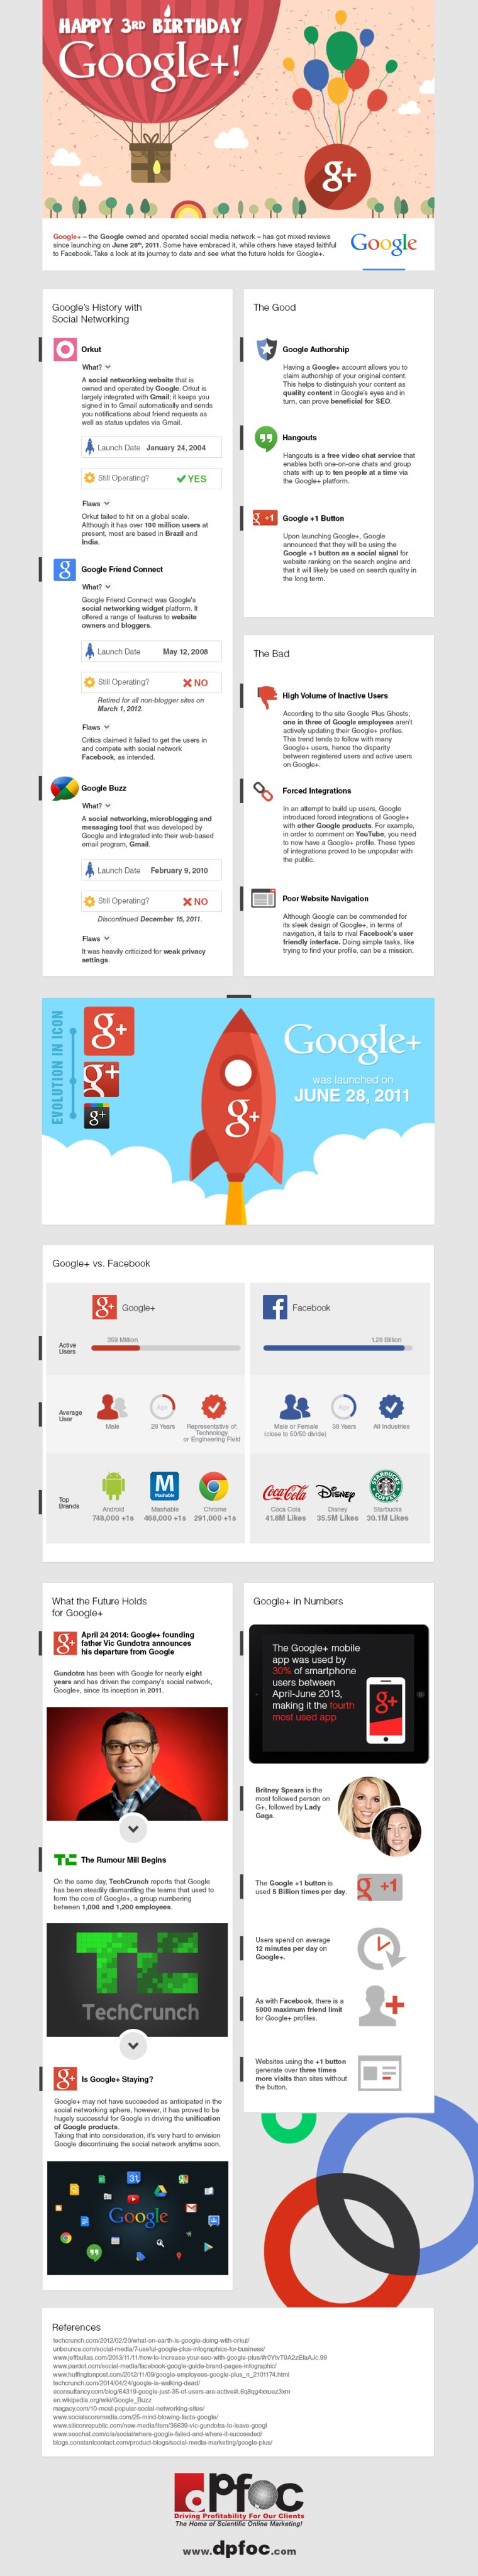 Happy 3rd Birthday Google Plus [images: DPFOC]